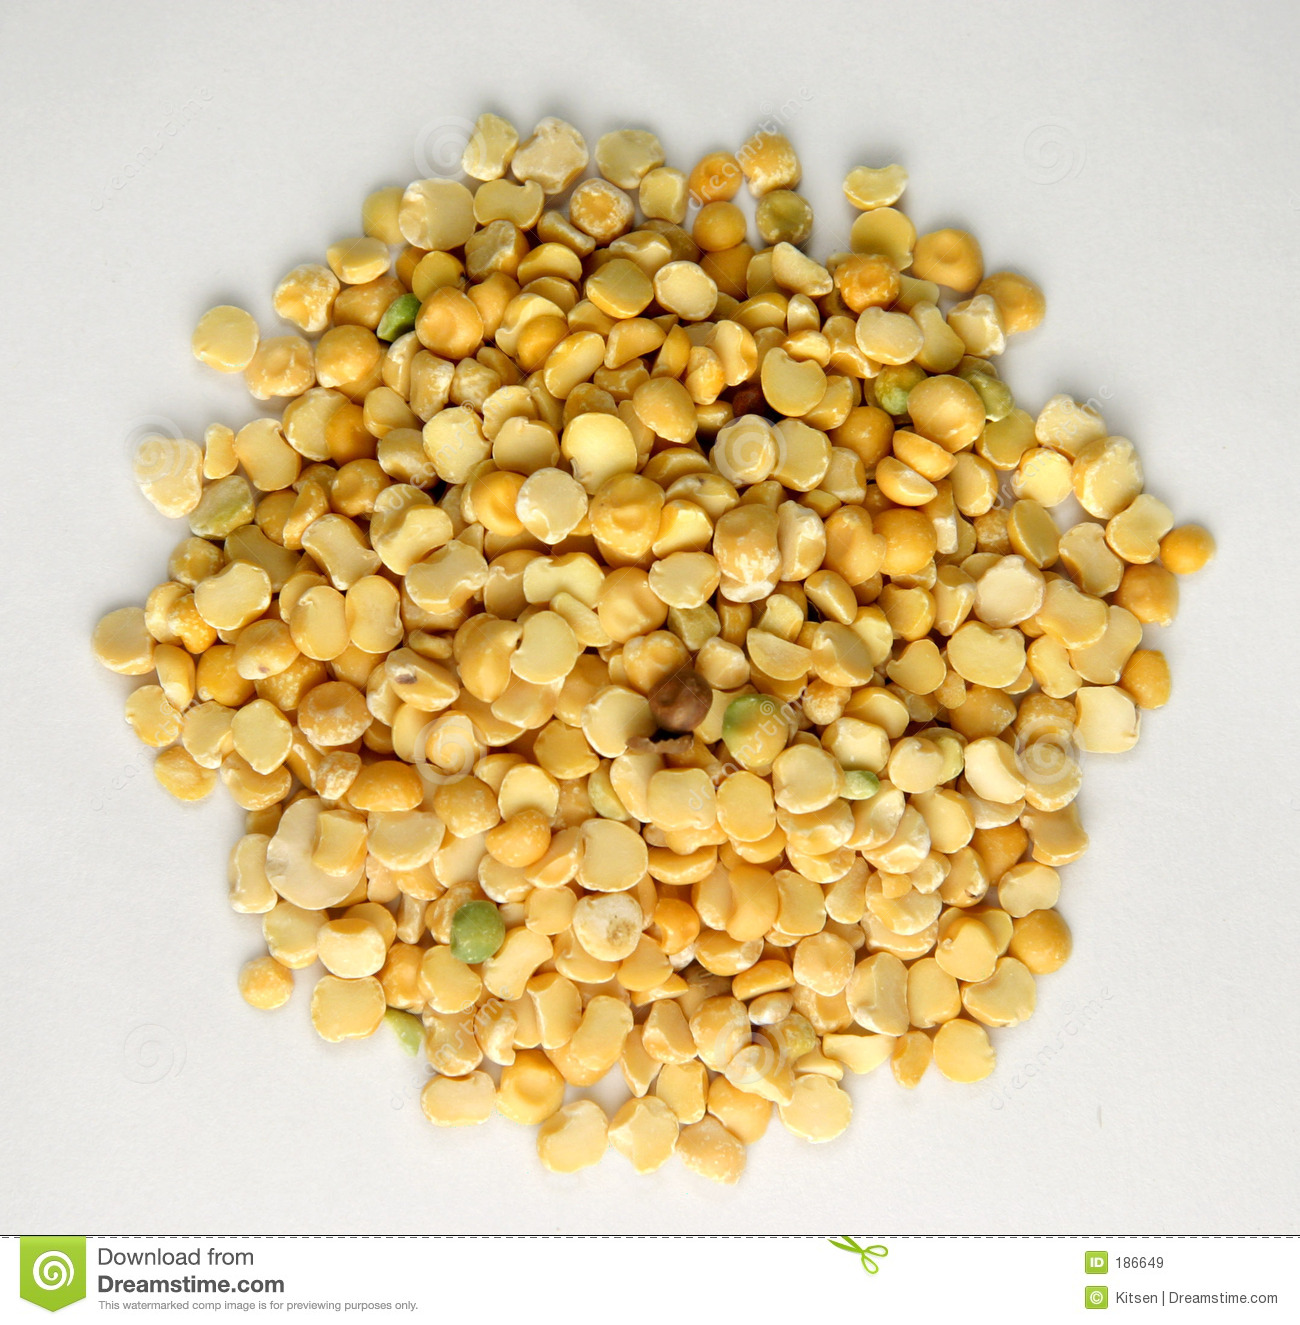 Yellow Lentils Royalty Free Stock Images - Image: 186649